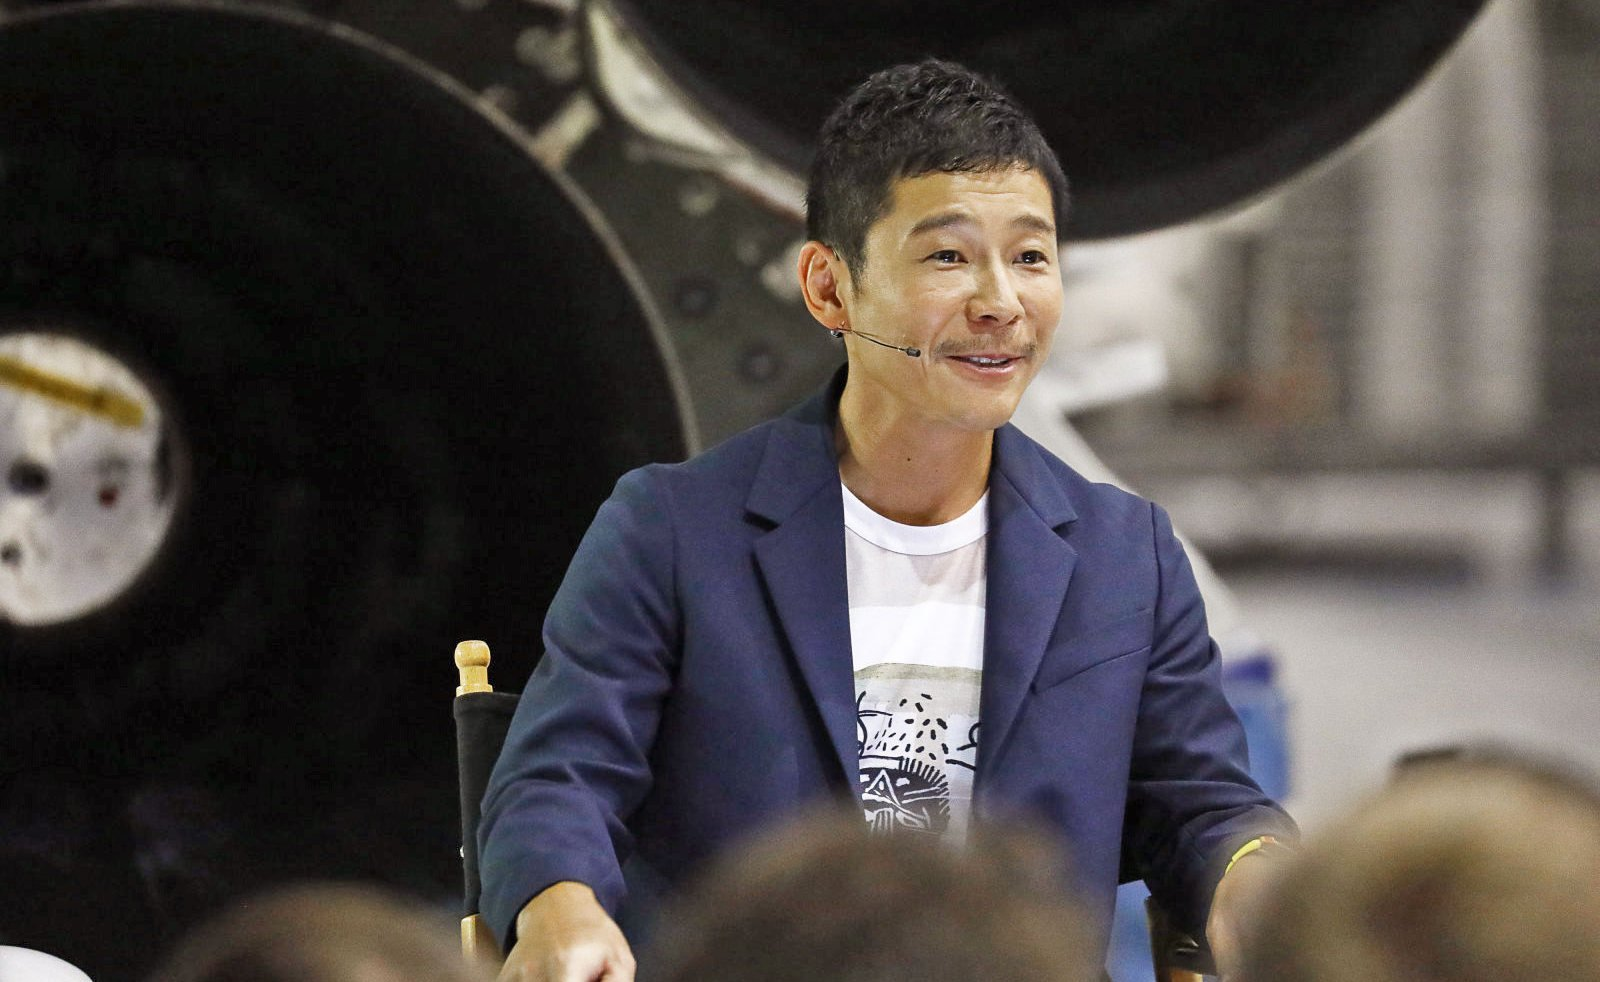 Japanese Billionaire Yusaku Maezawa Will Be The First Moon